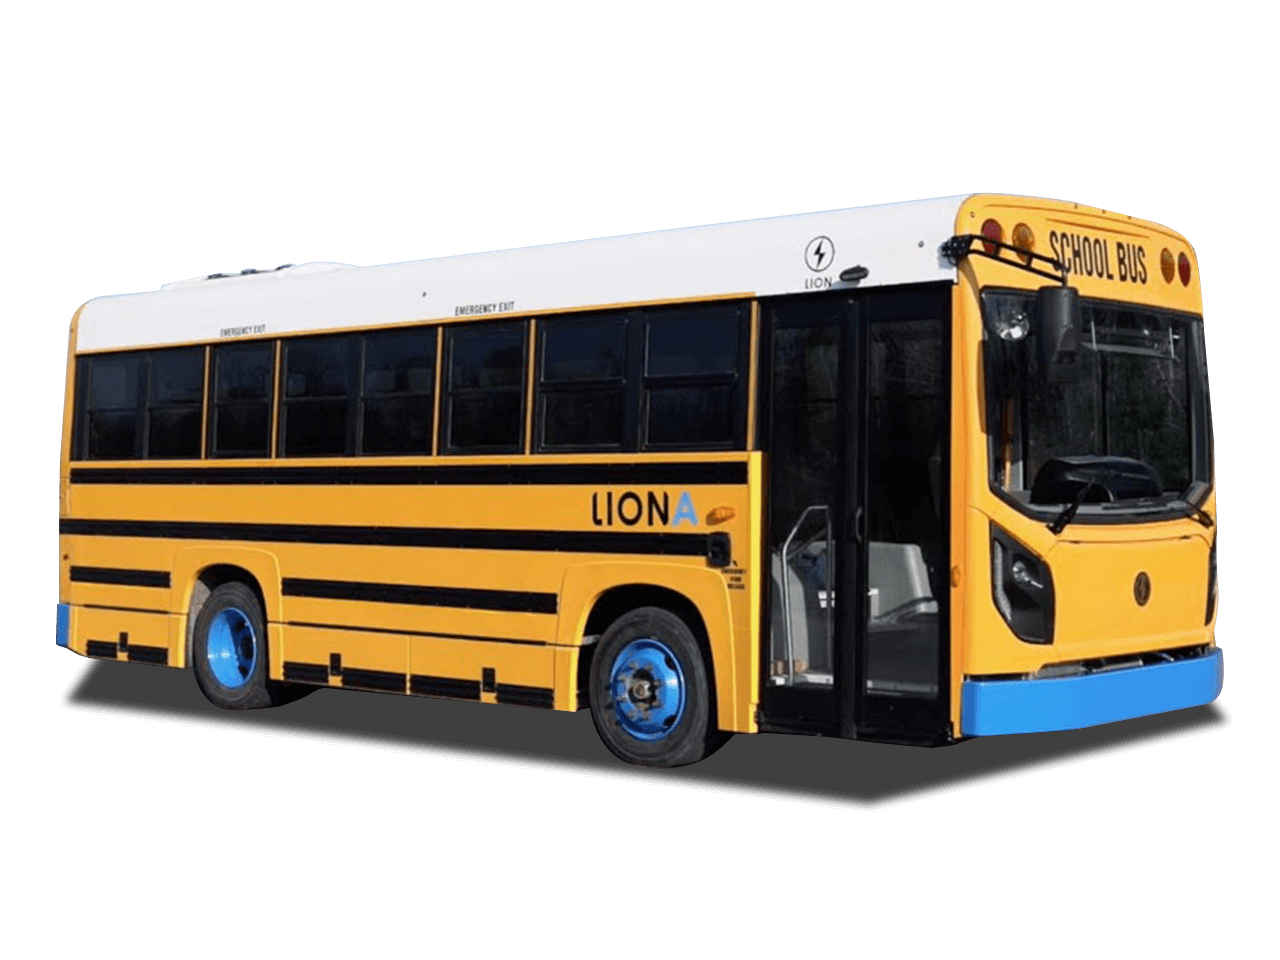 Lion A 84 kWh